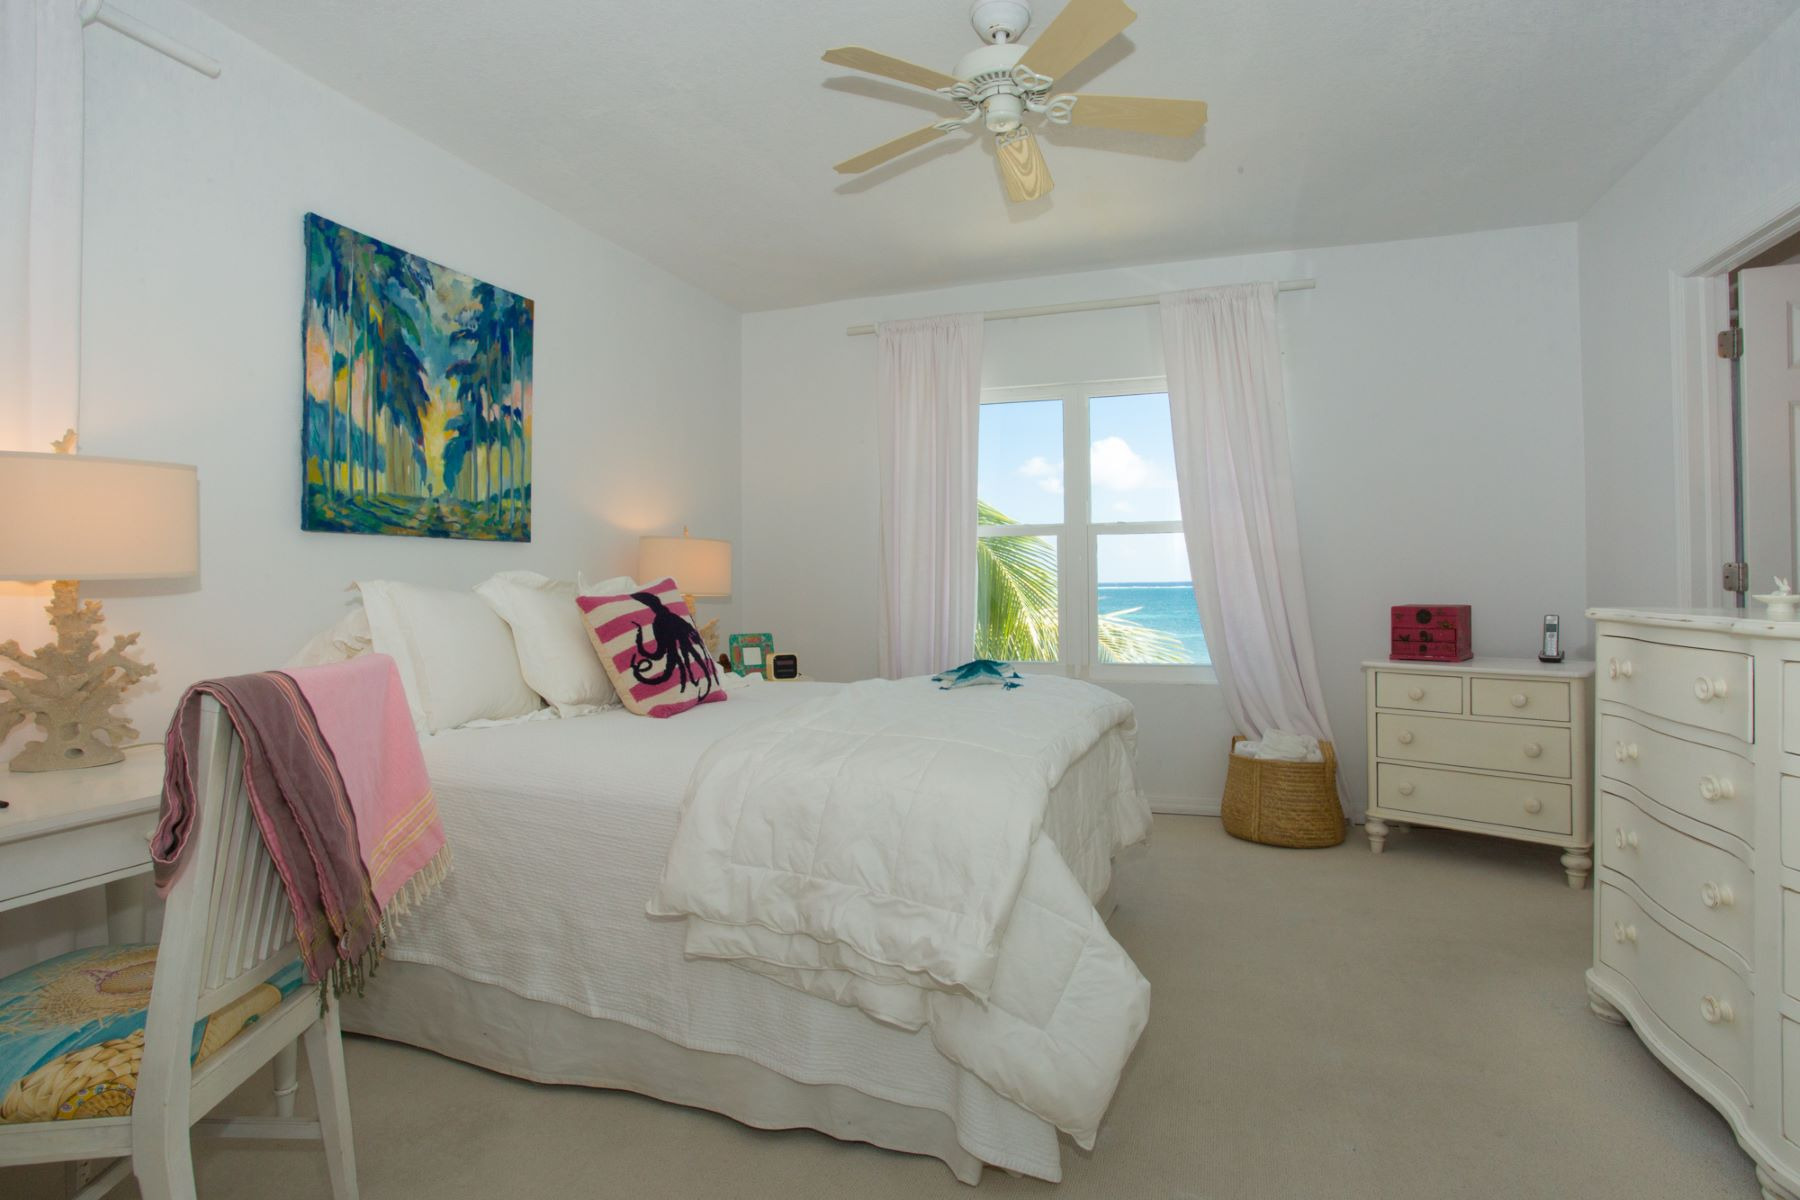 Additional photo for property listing at Purple Palm Austin Conolly Dr 东区, 大开曼岛 KY1 开曼群岛